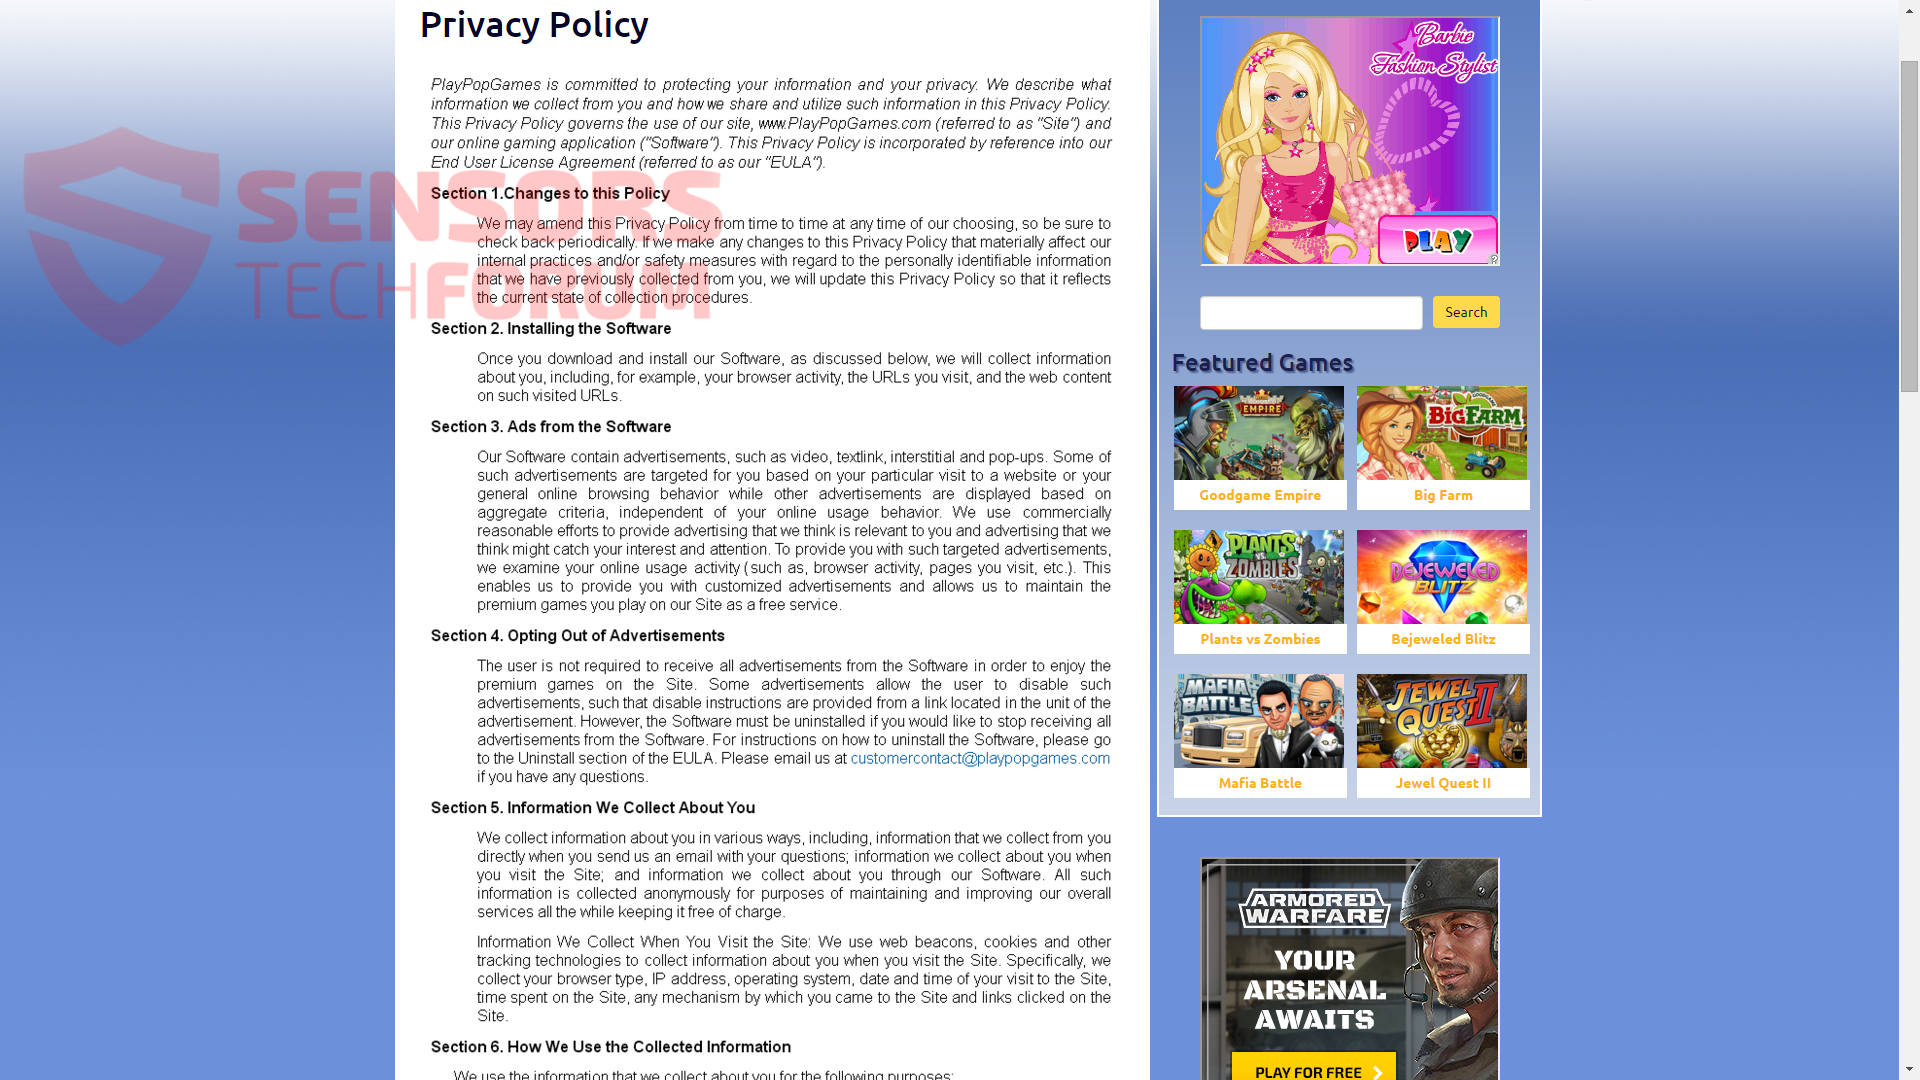 STF-playpopgames-com-play-pop-games-ads-advertisements-privacy-policy